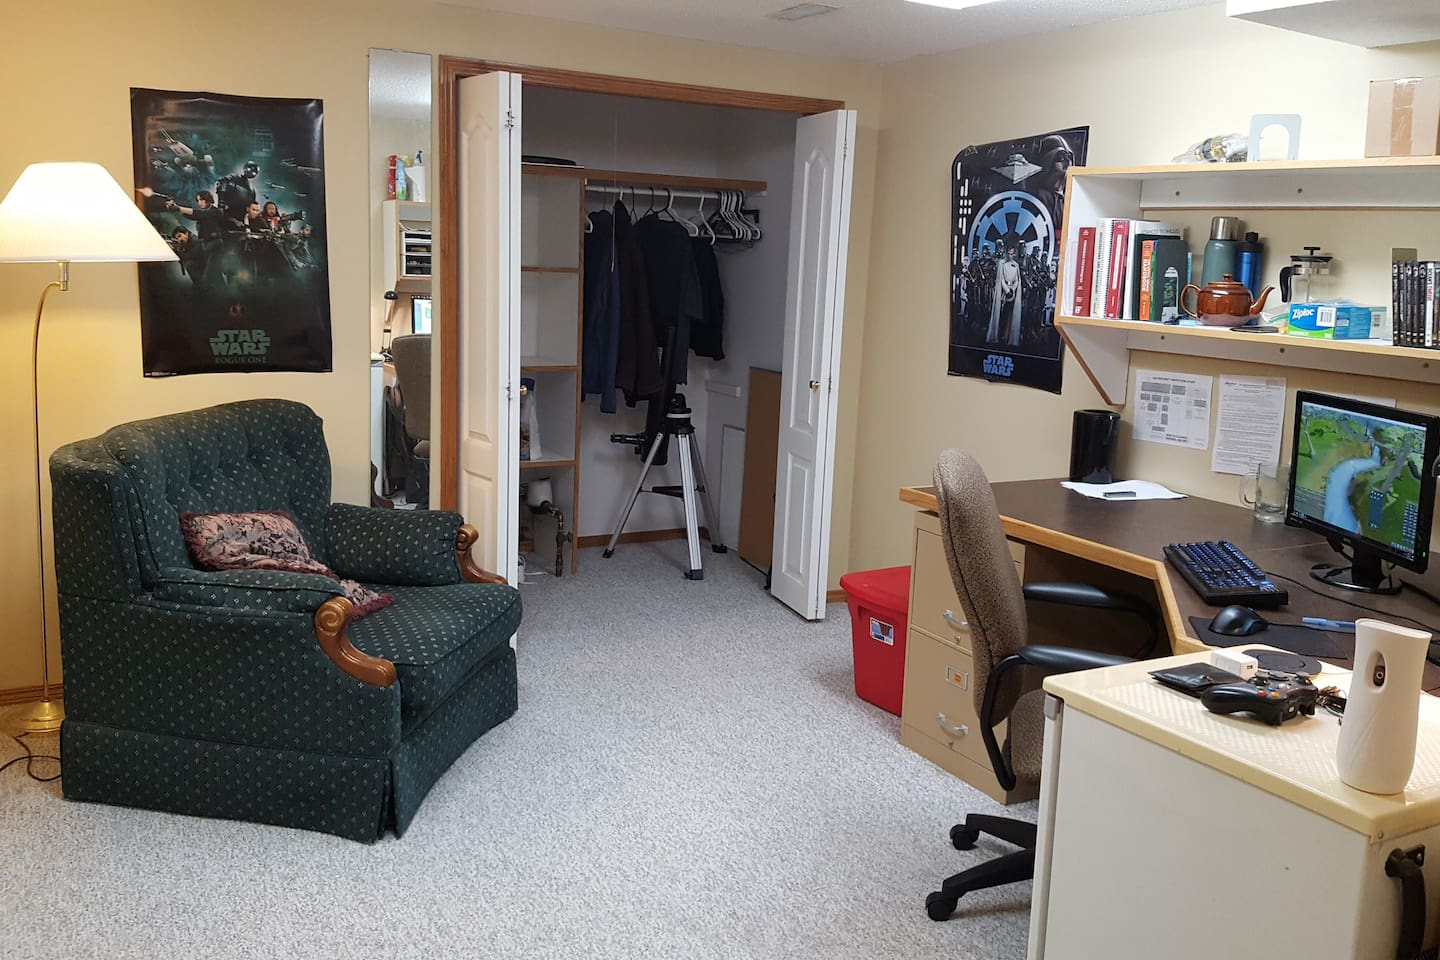 Adjacent sitting area with wired internet access